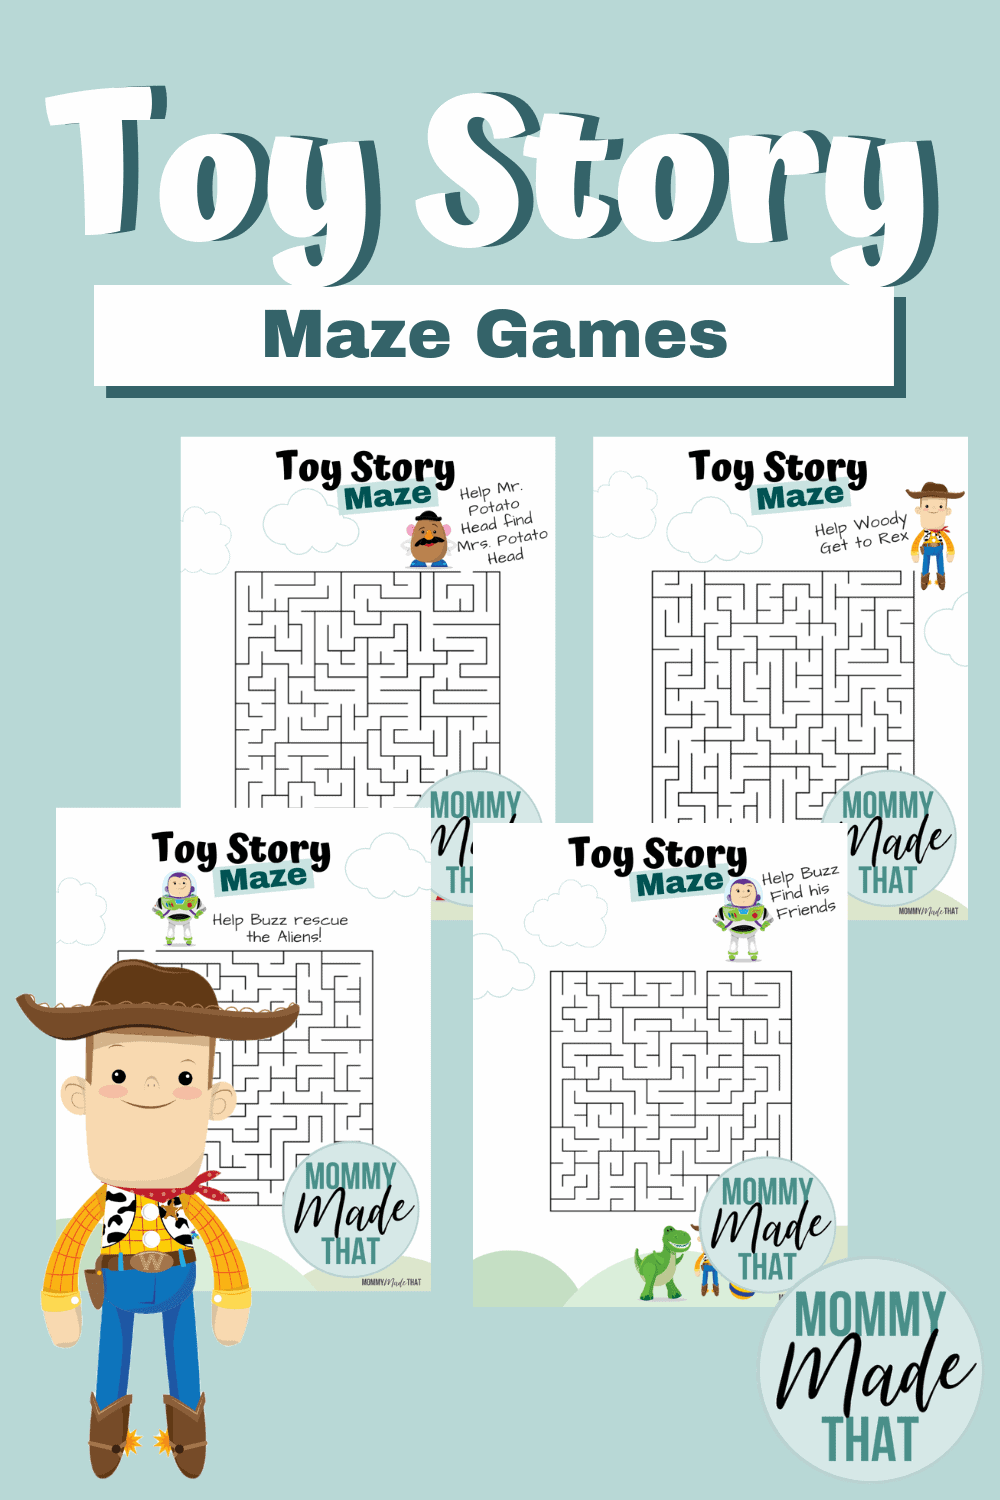 Fun Toy Story Printable Maze Games